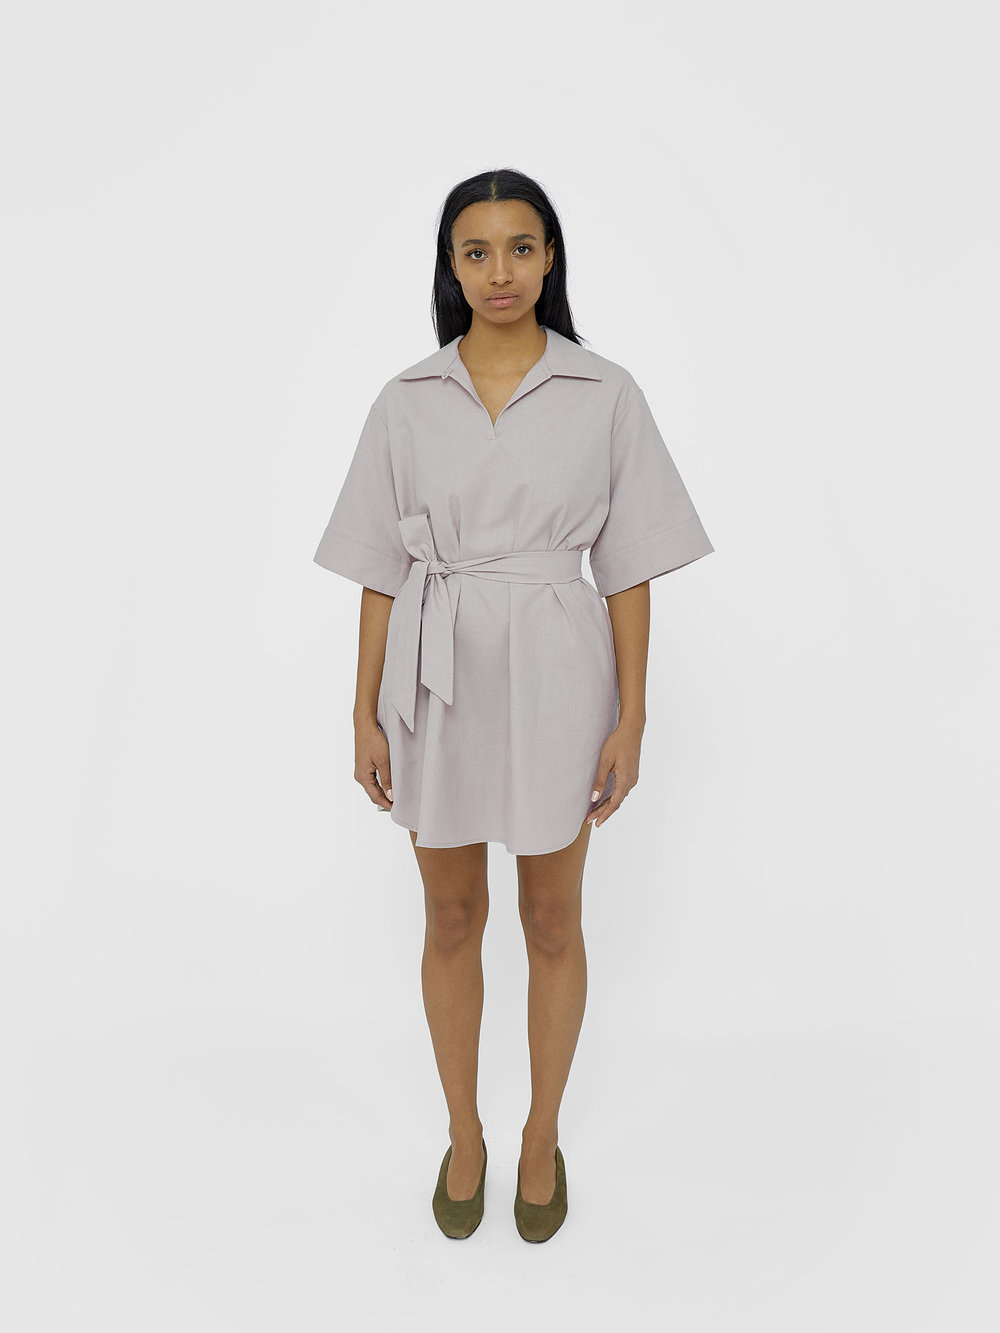 Kirsten Wears One DNA Versatile Tunic in Pale Lilac